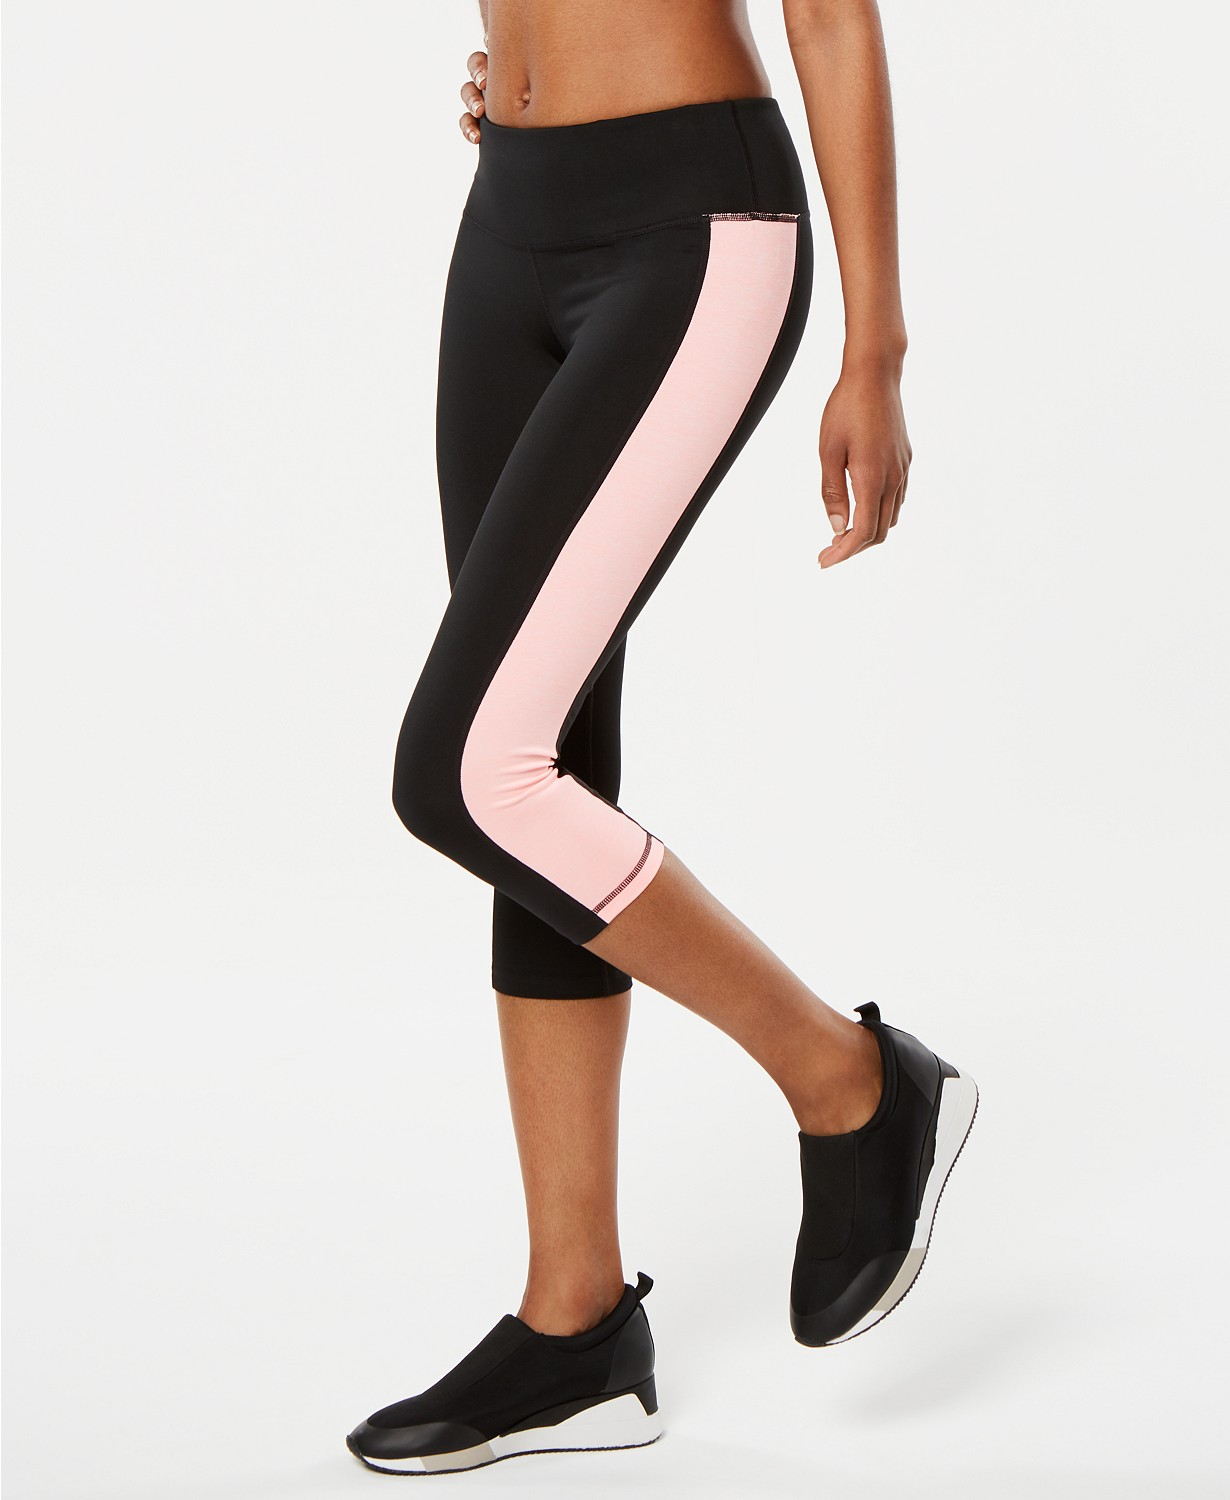 (50% OFF Deal) Colorblocked Cropped Leggings $12.25